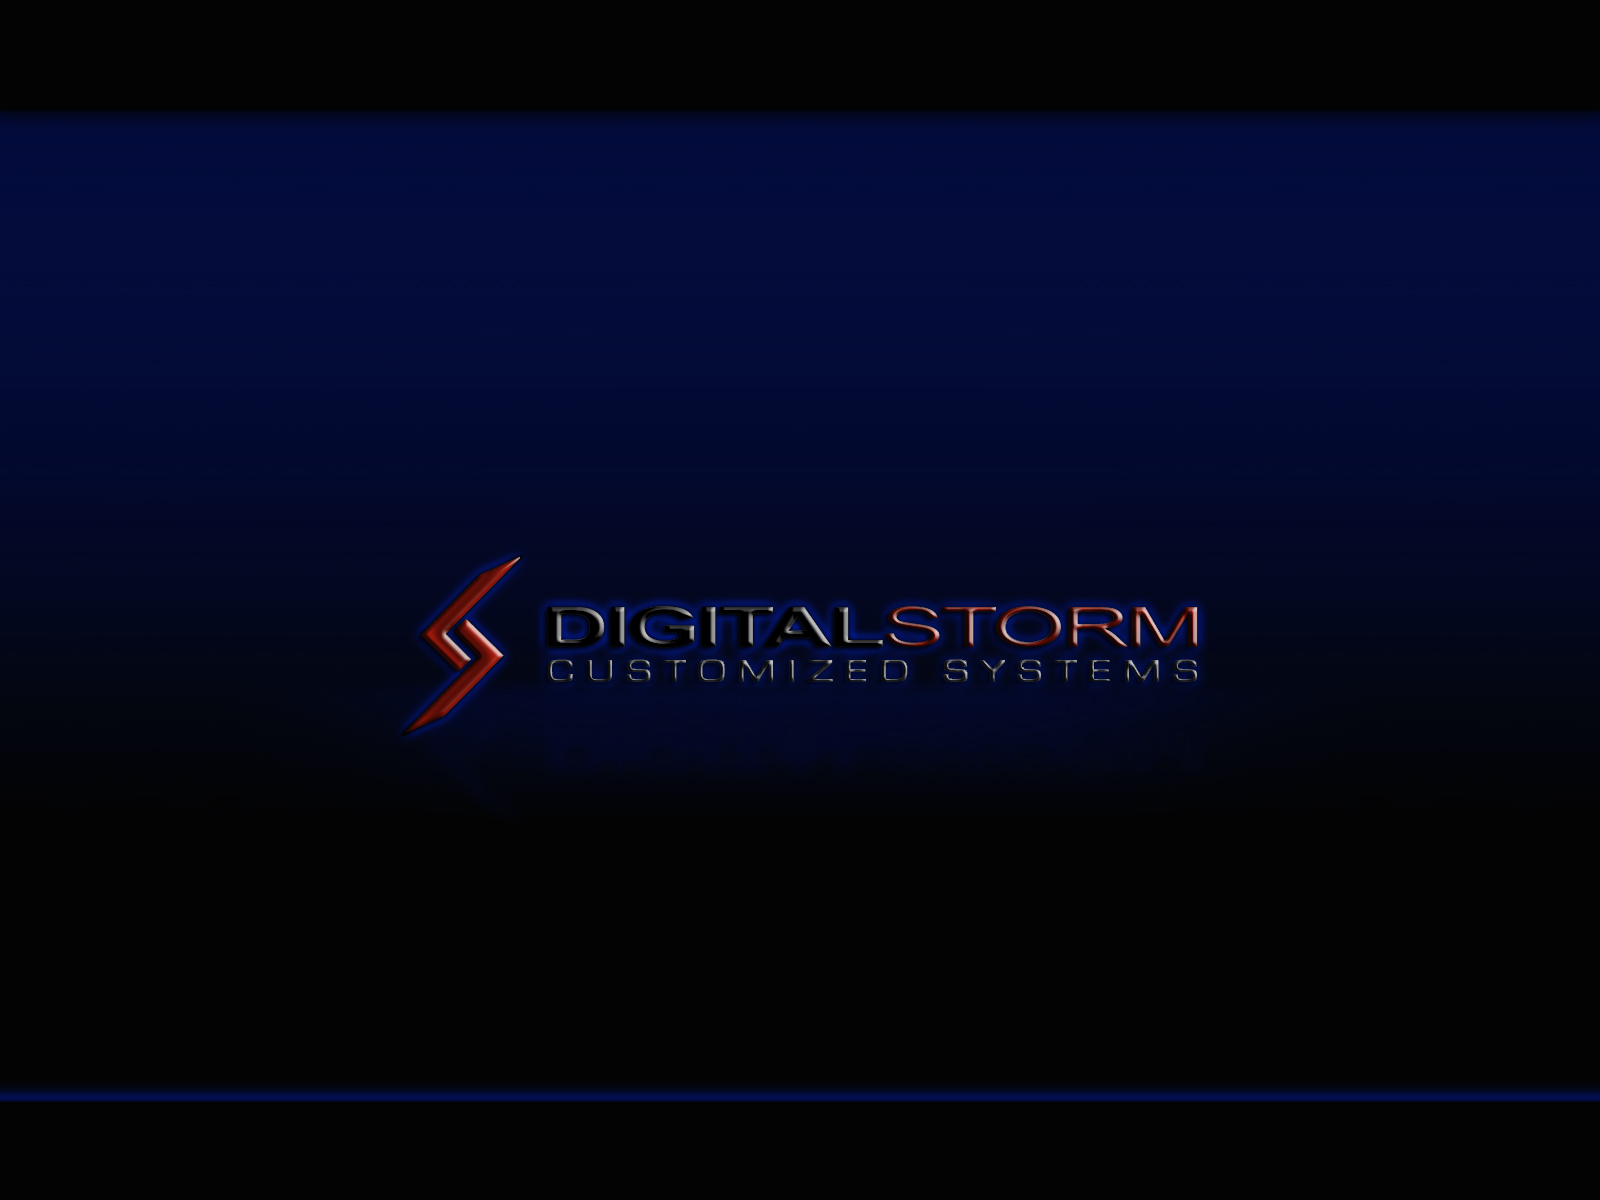 digital storm wallpapers 1920x1200 - photo #7